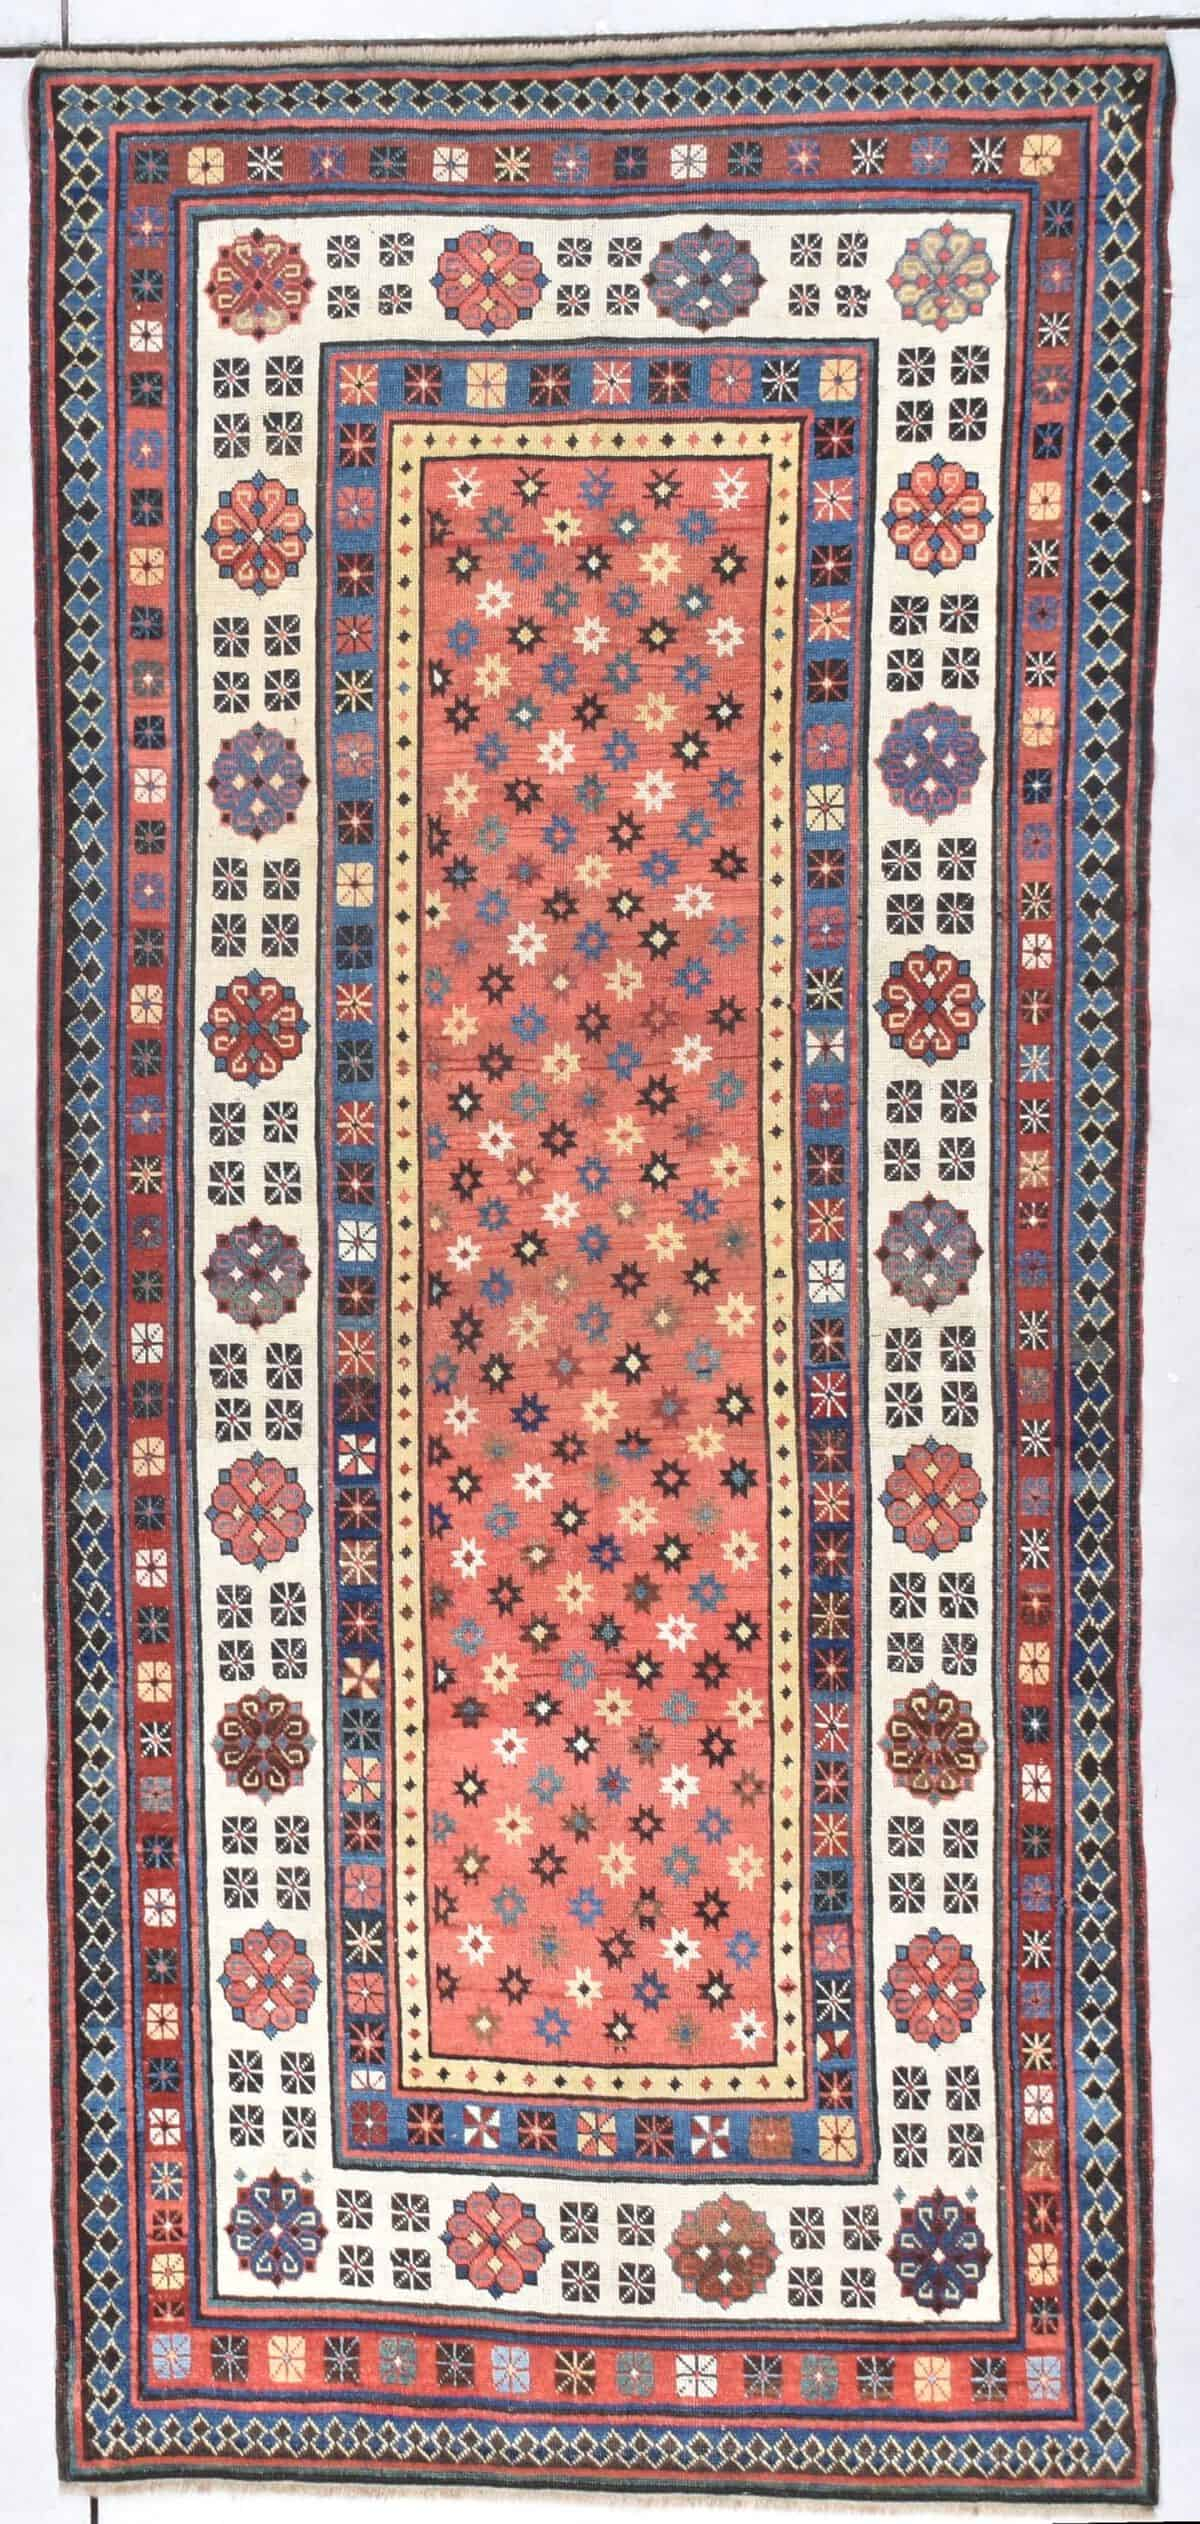 7685 Talish antique rug image